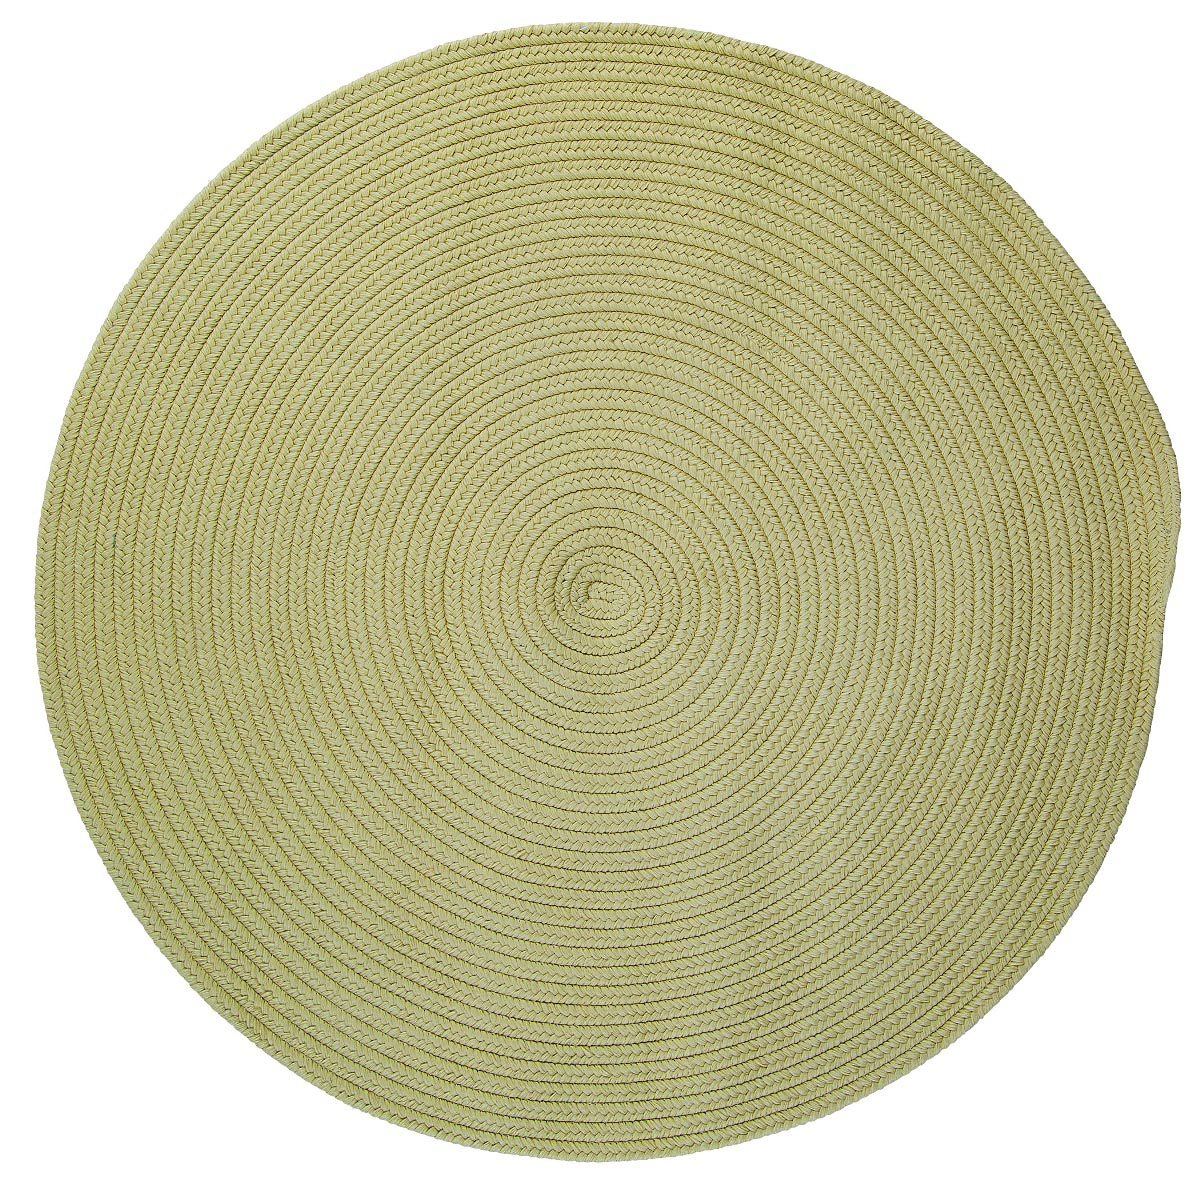 Boca Raton Celery Outdoor Braided Round Rugs